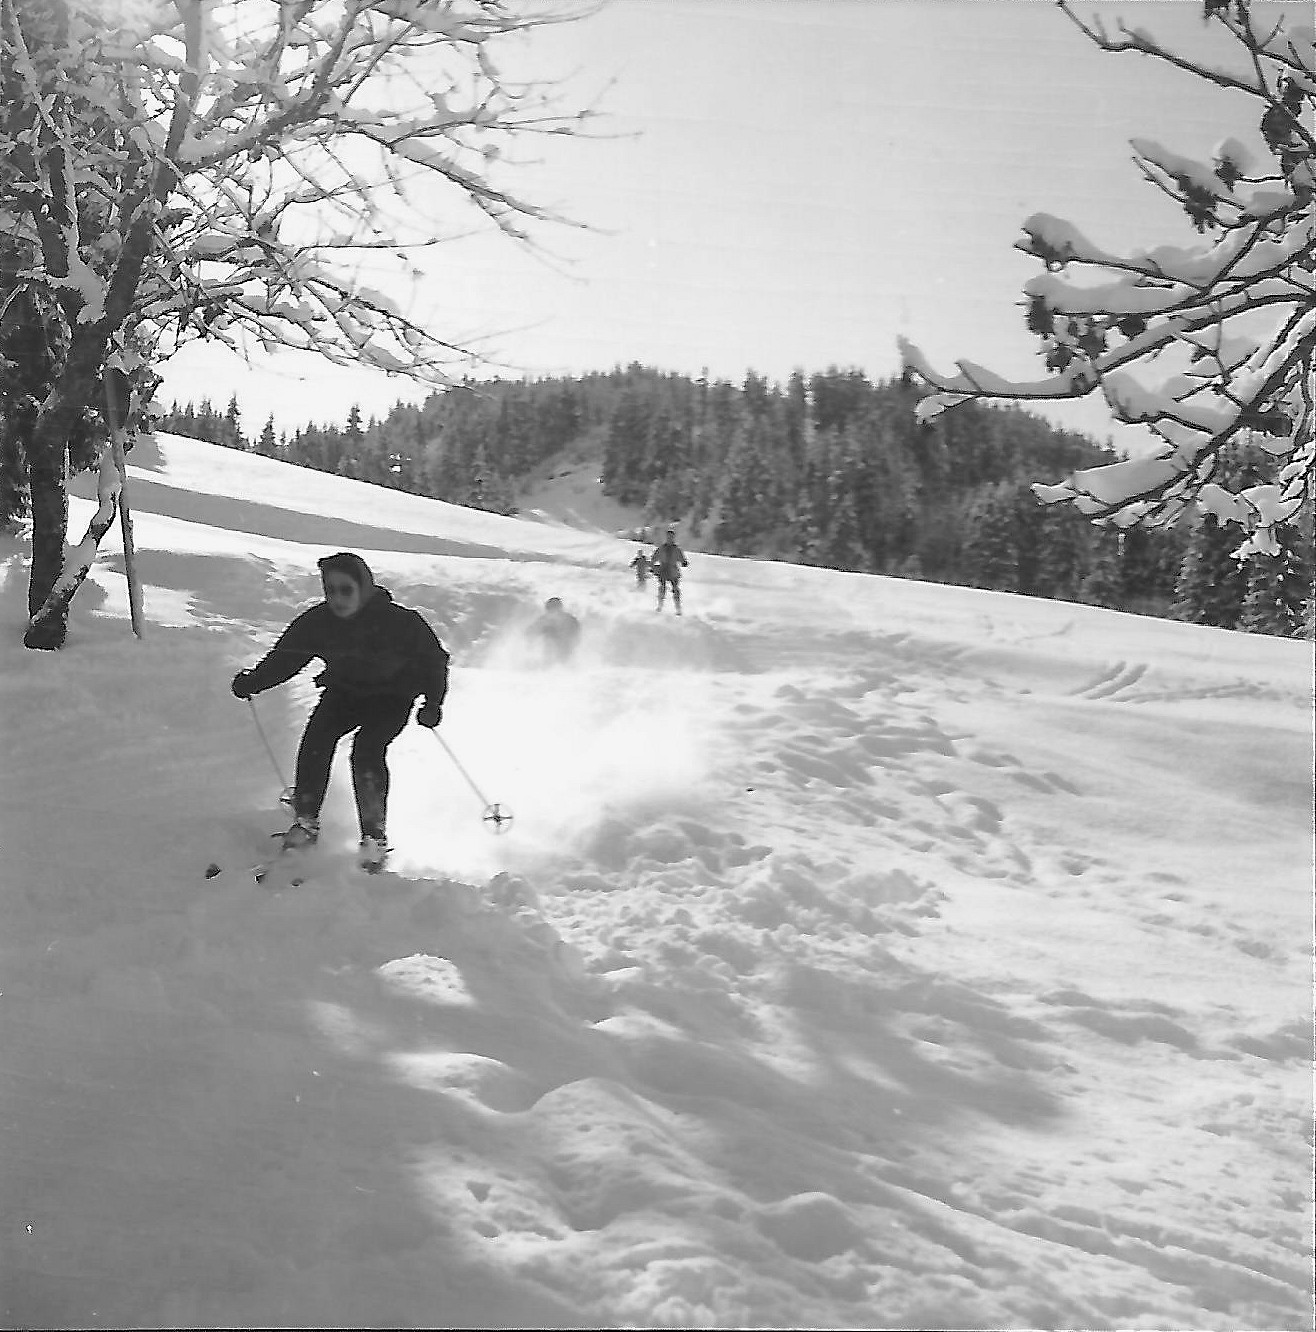 sur la piste B du Pleney en 1958